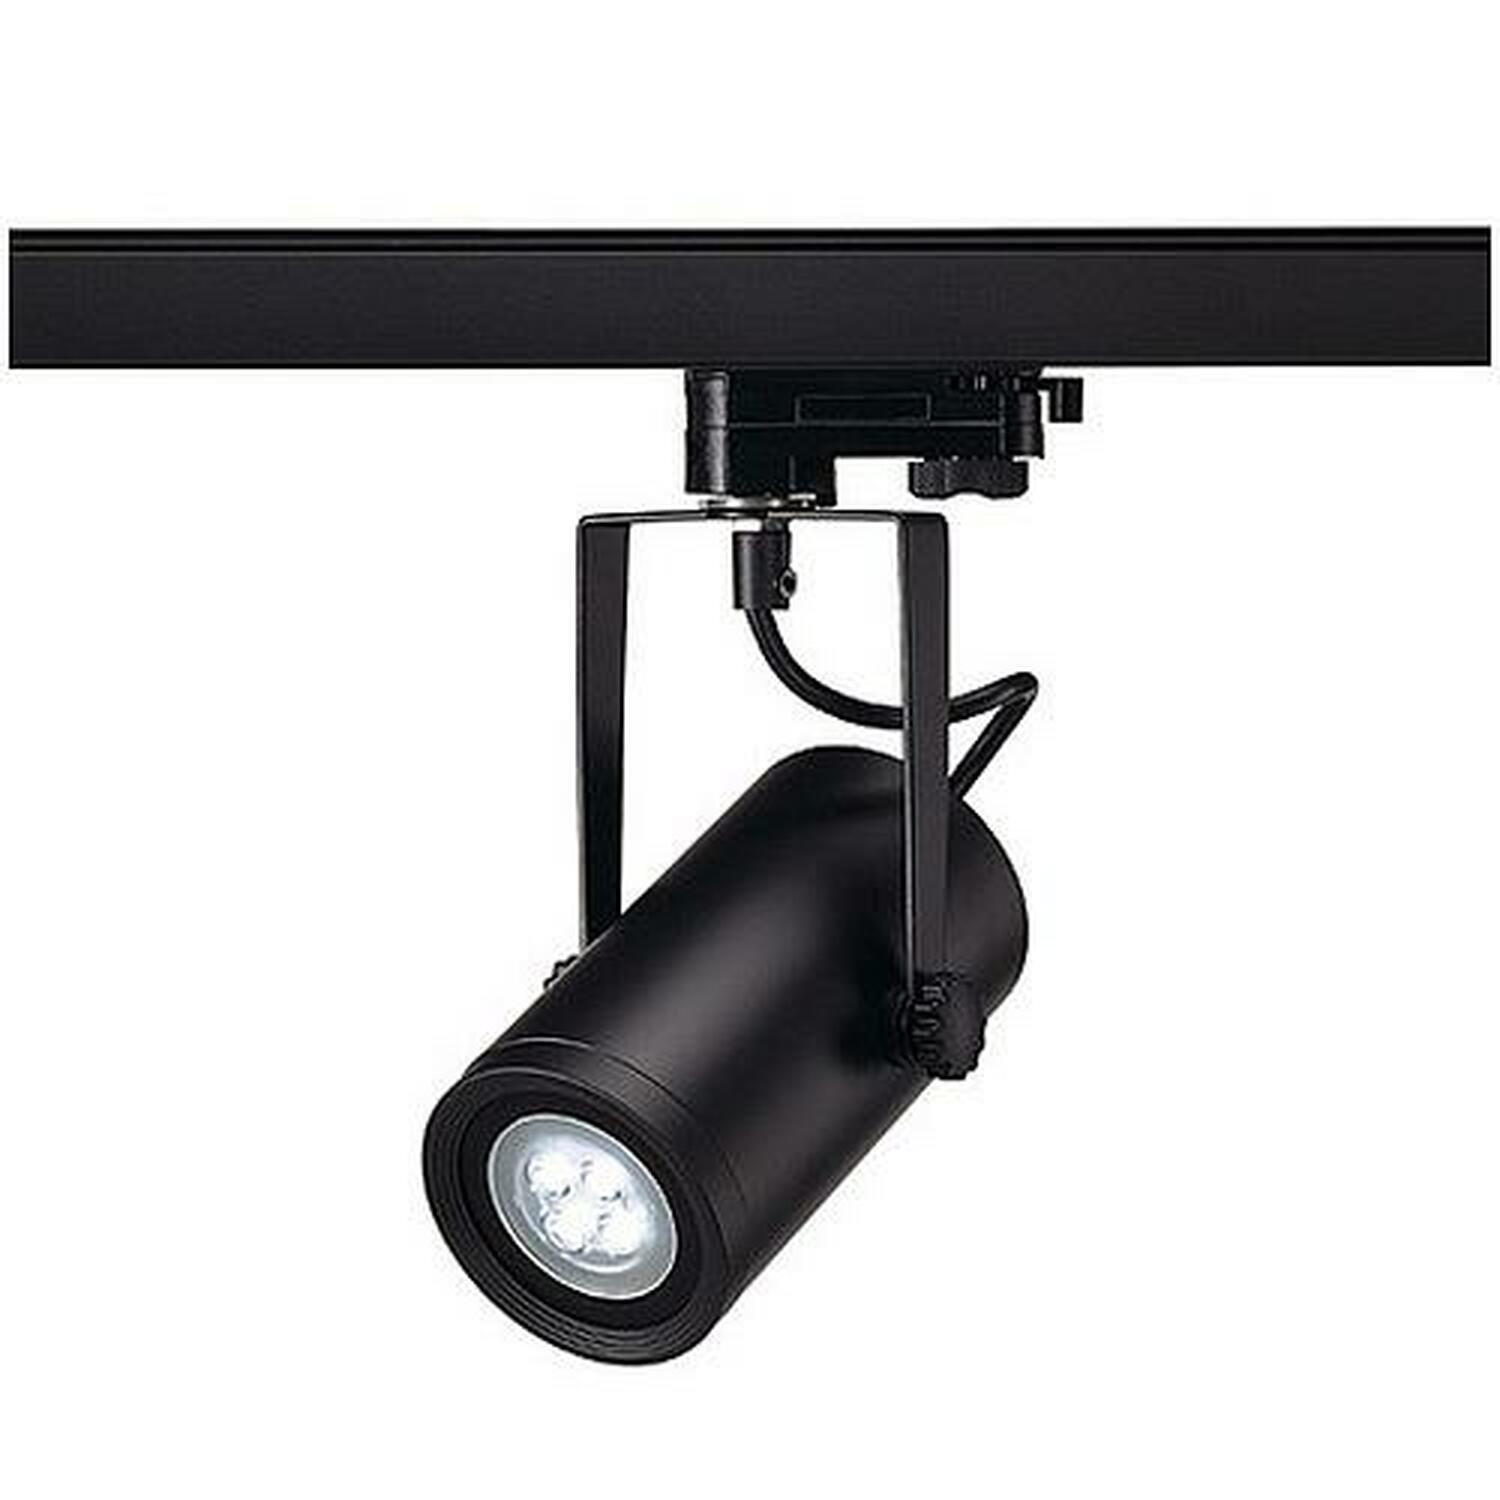 EURO SPOT INTEGRATED LED, schwarz, 13W, 4000K, 15°, inkl. 3P.-Adapter